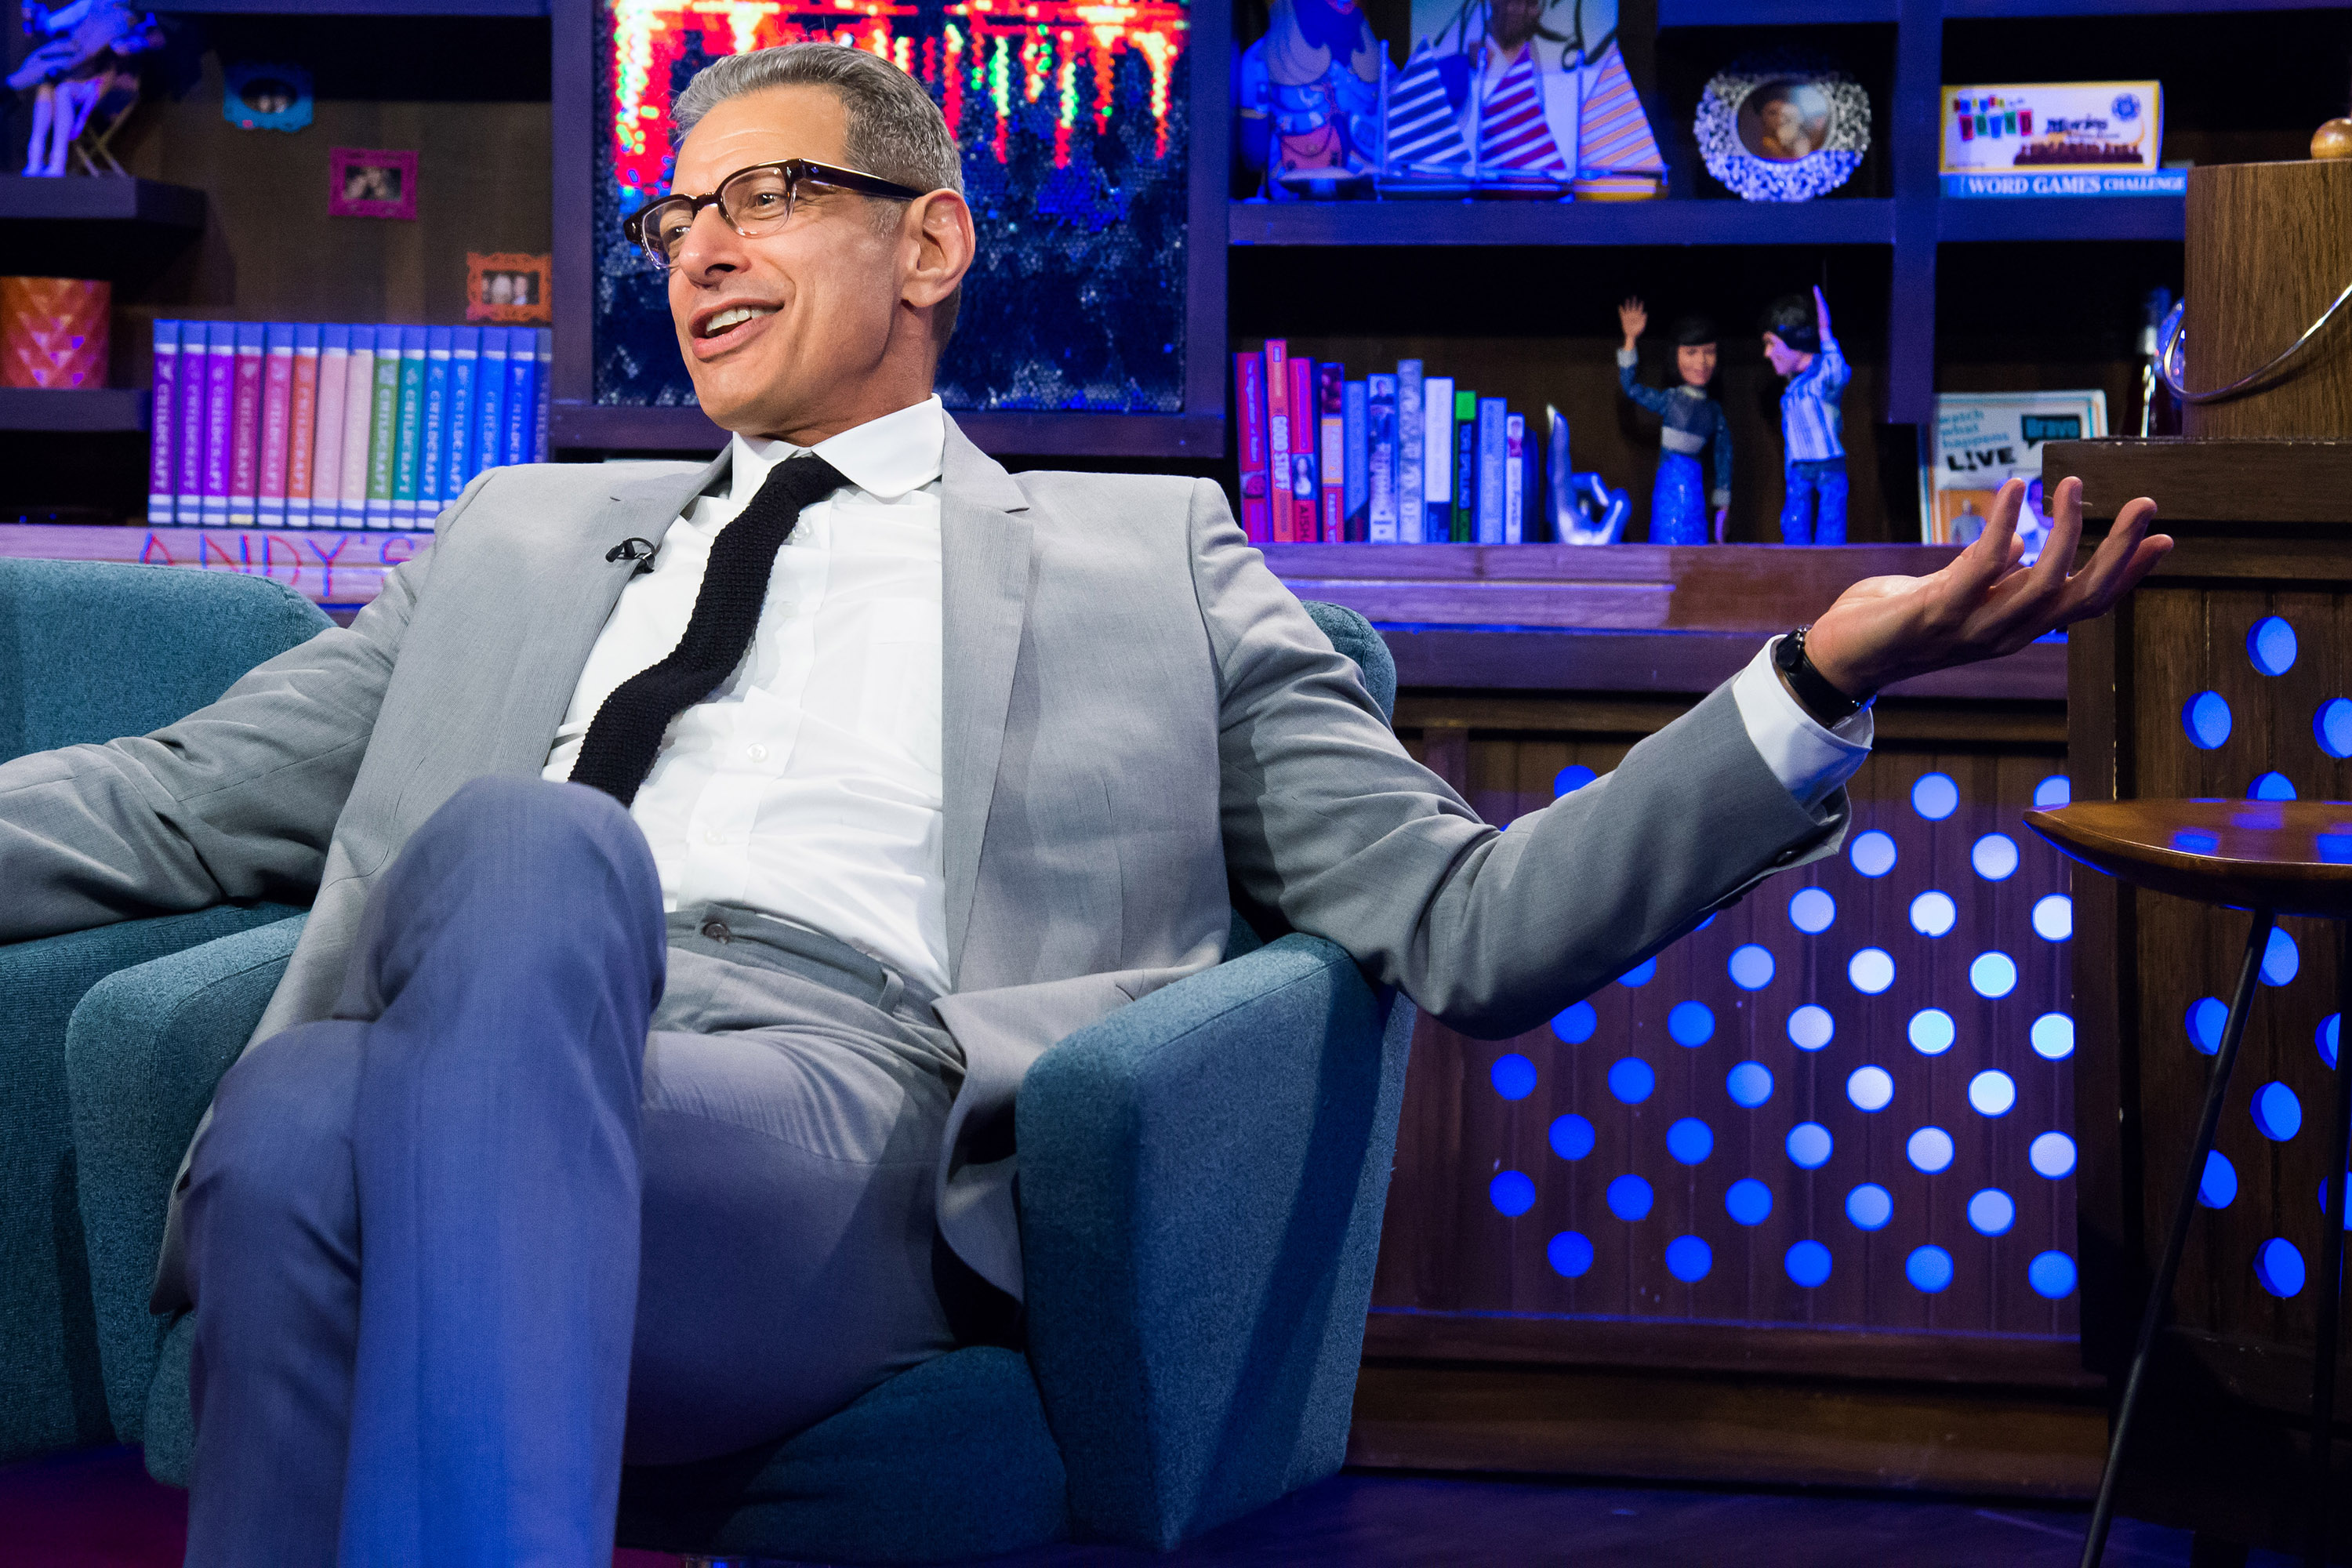 Pictured: Jeff Goldblum in his natural element.